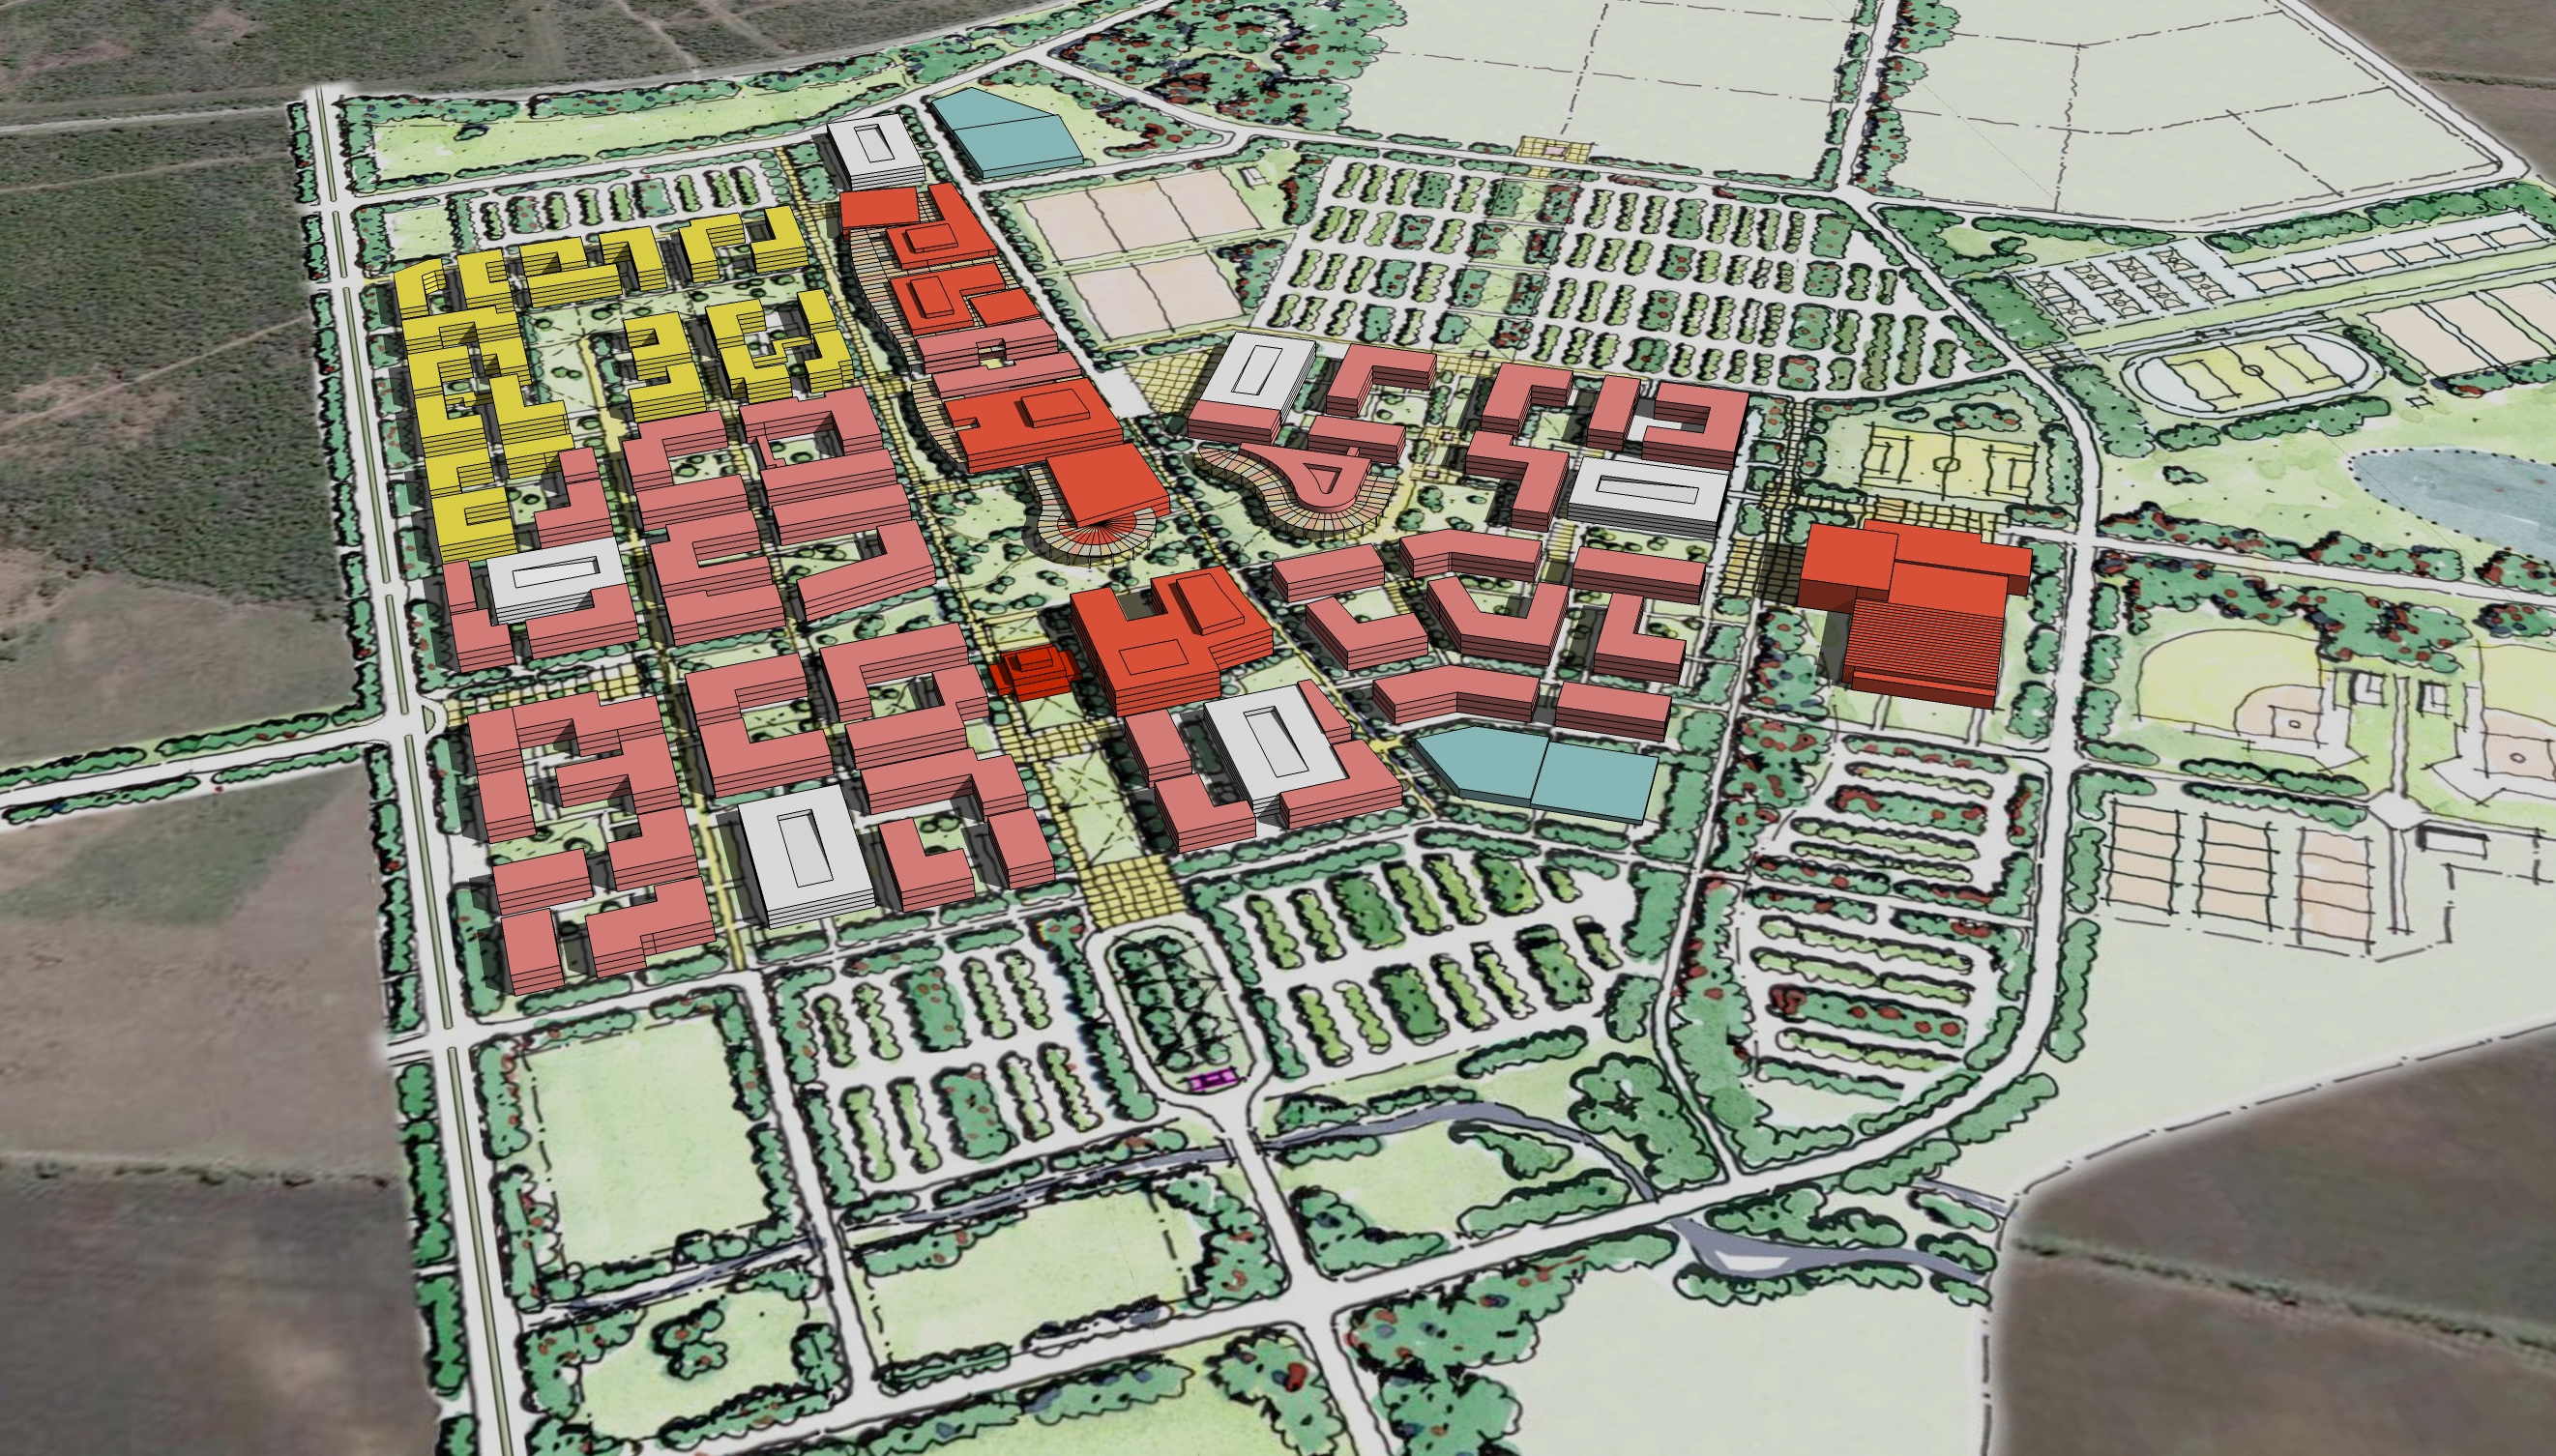 Texas A&M University San Antonio Master Plan